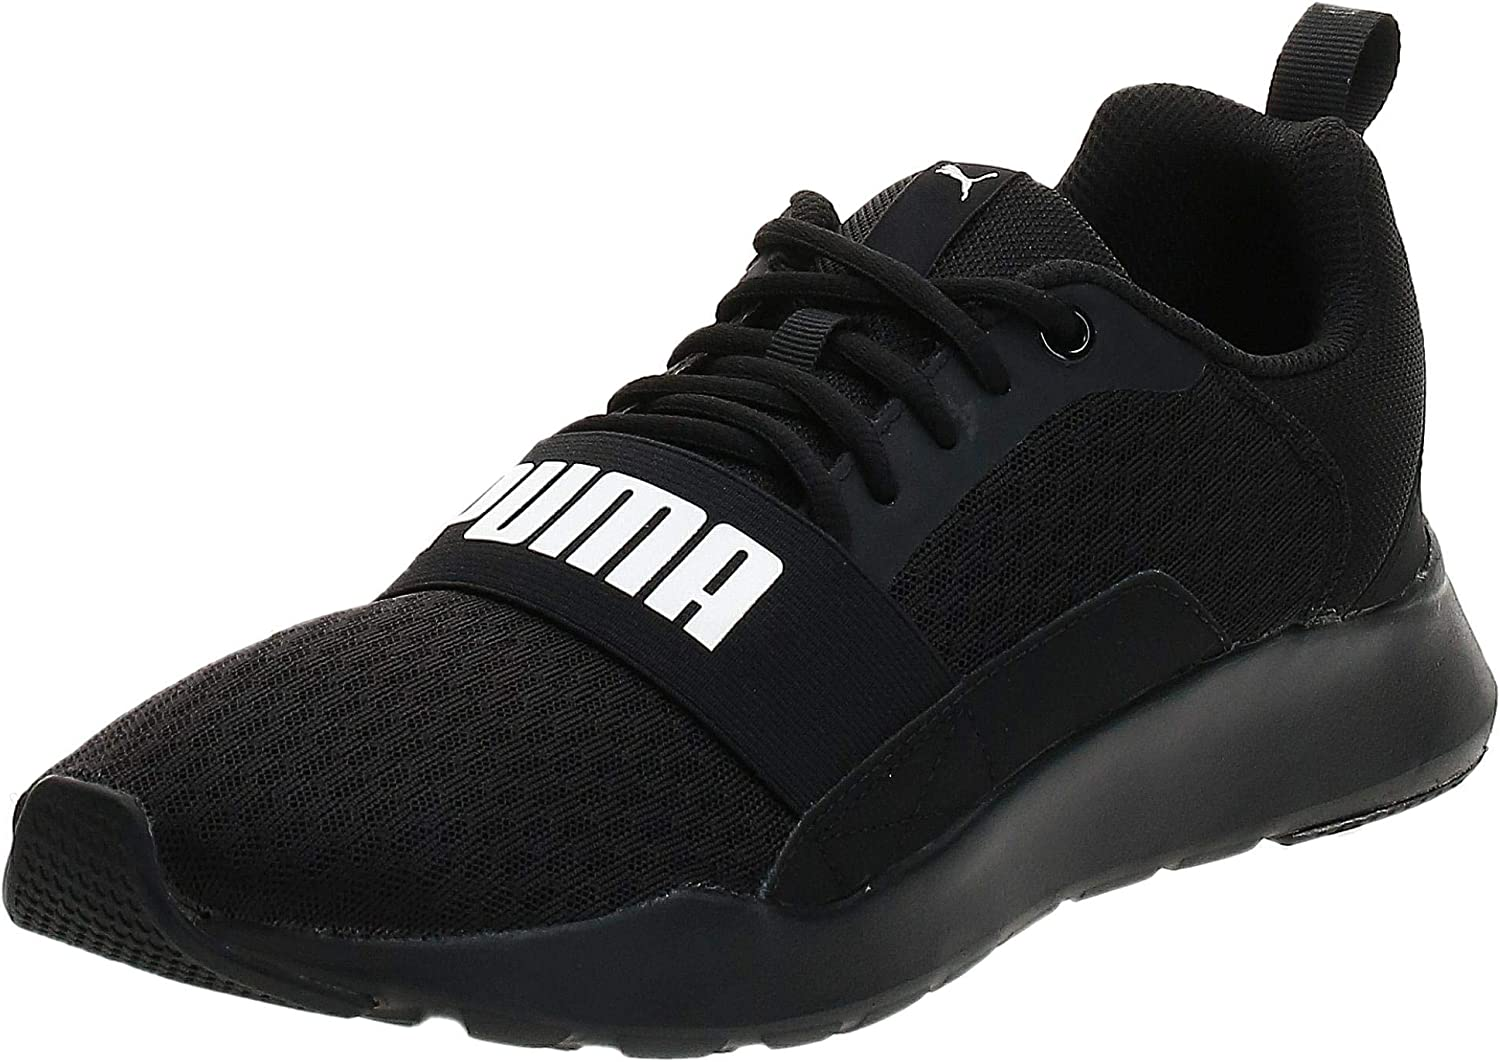 PUMA Wired, Zapatillas Unisex Adulto: Amazon.es: Zapatos y complementos